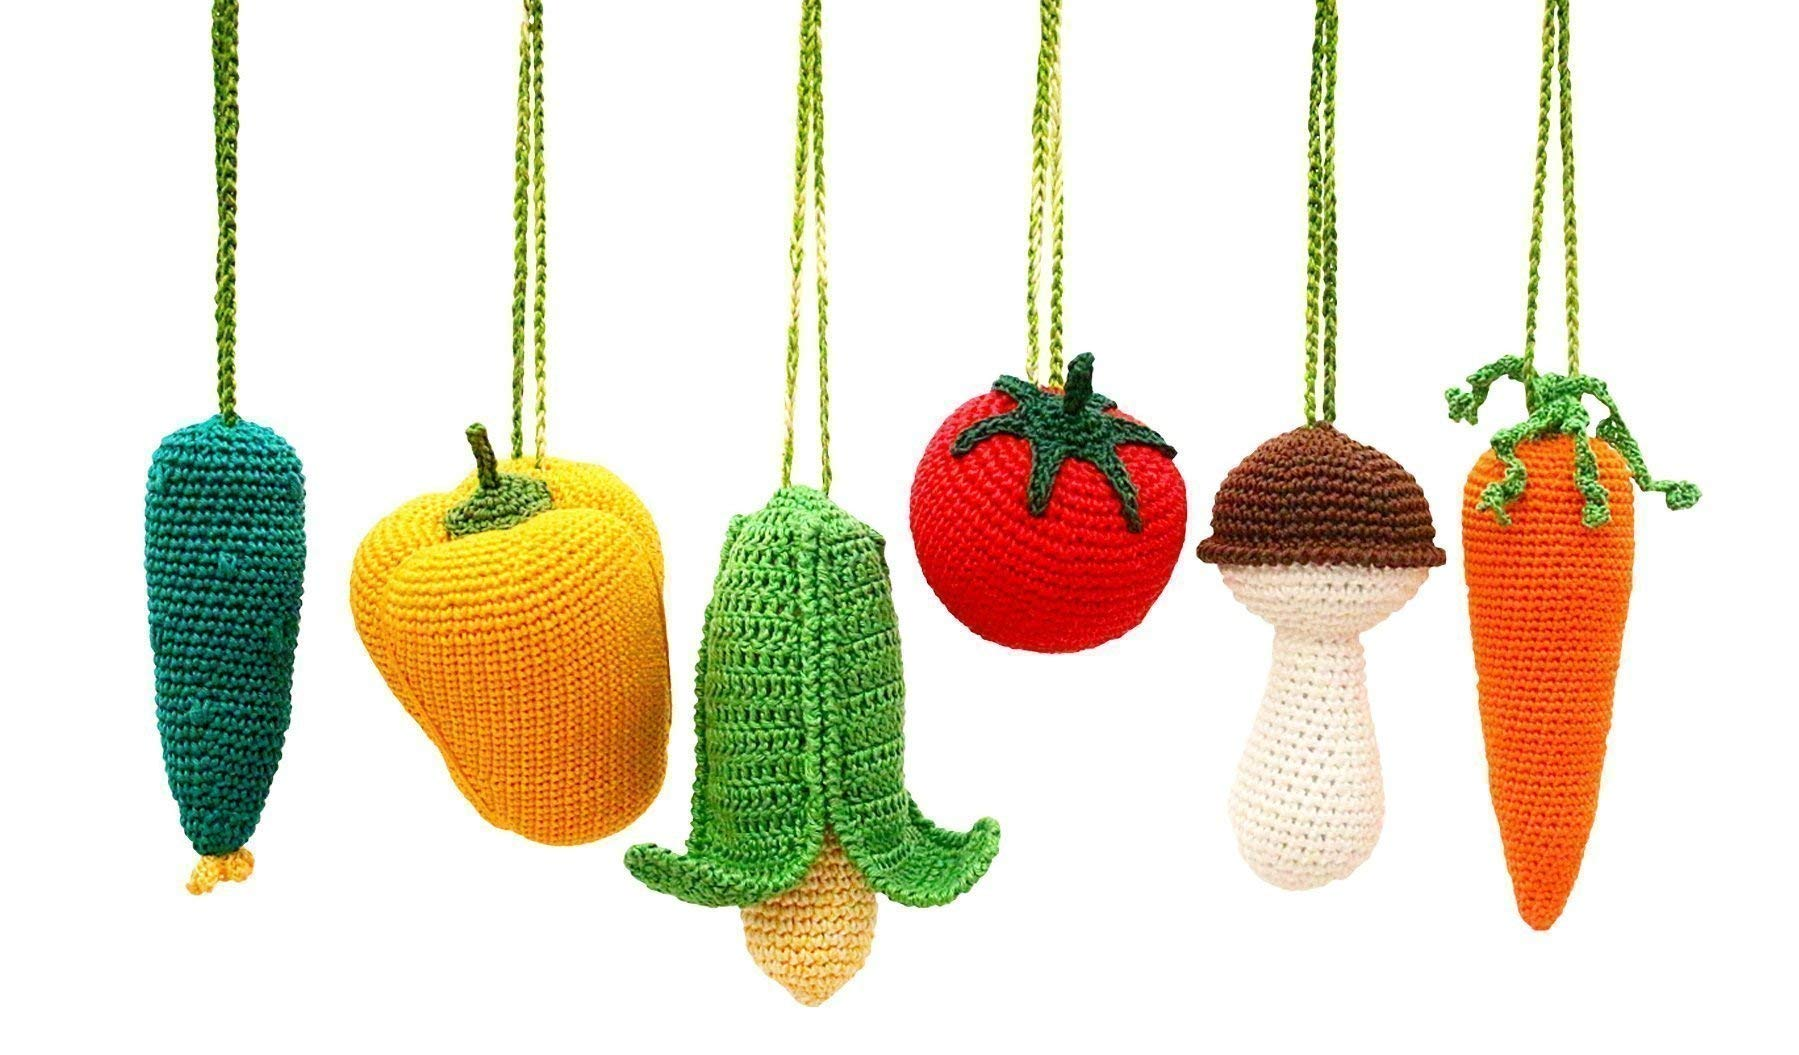 Baby gym mobiles Vegetables Set of 6, play gym accessories, baby rattles, crochet veggies. Handmade in Eastern Europe. Baby shower gift. Gender neutral